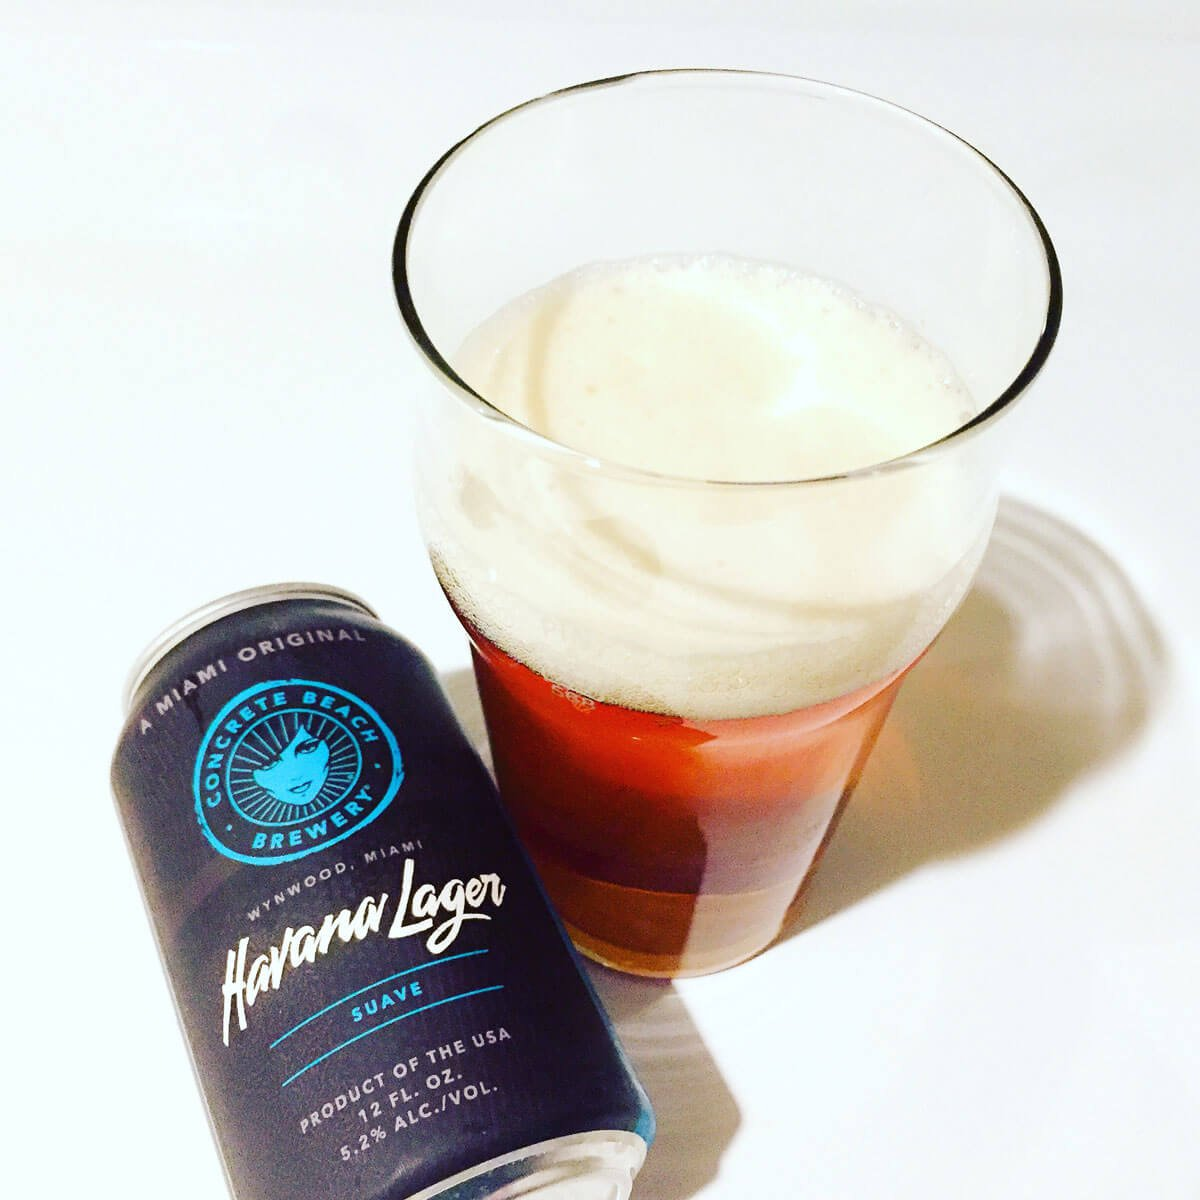 Havana Lager, a Vienna Lager by Concrete Beach Brewery